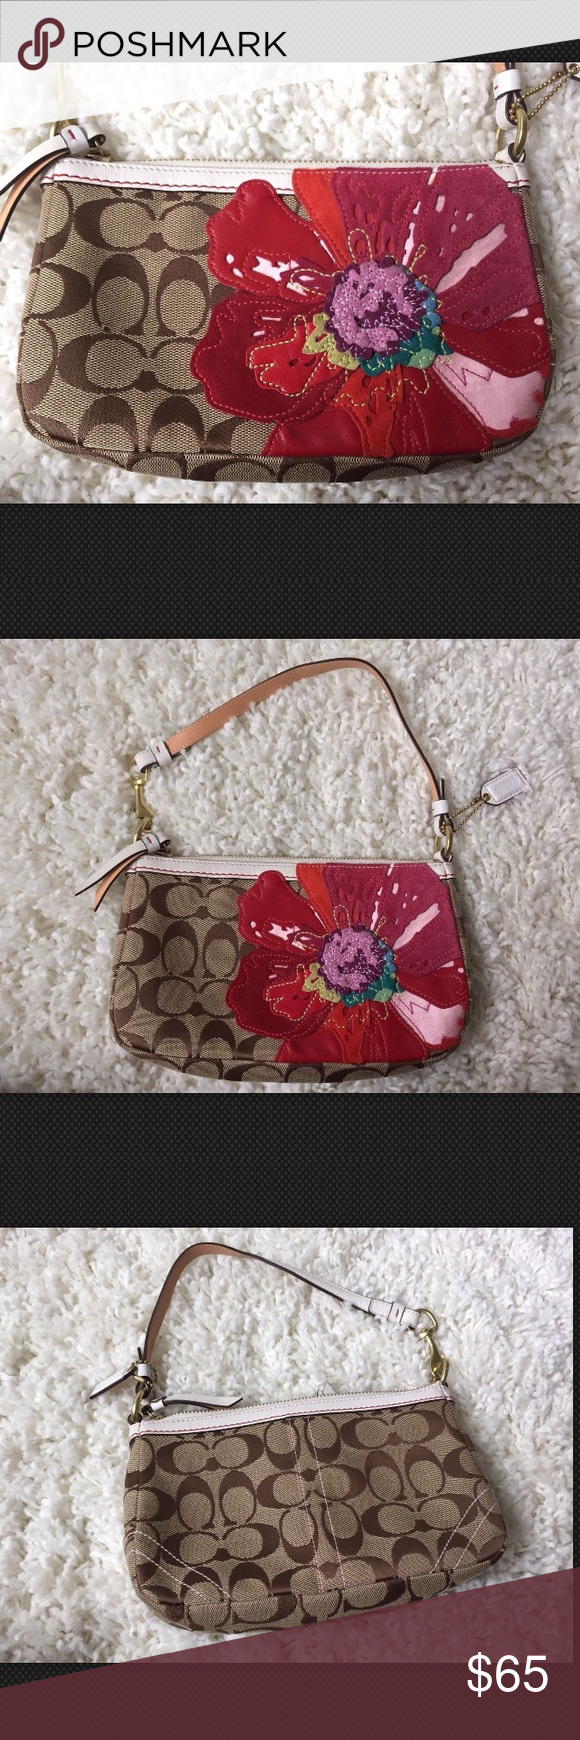 Buy coach poppy flower bag height 52721 60770 low cost coach signature poppy flower bag authentic coach signature handbag gorgeous poppy flower detail new mightylinksfo